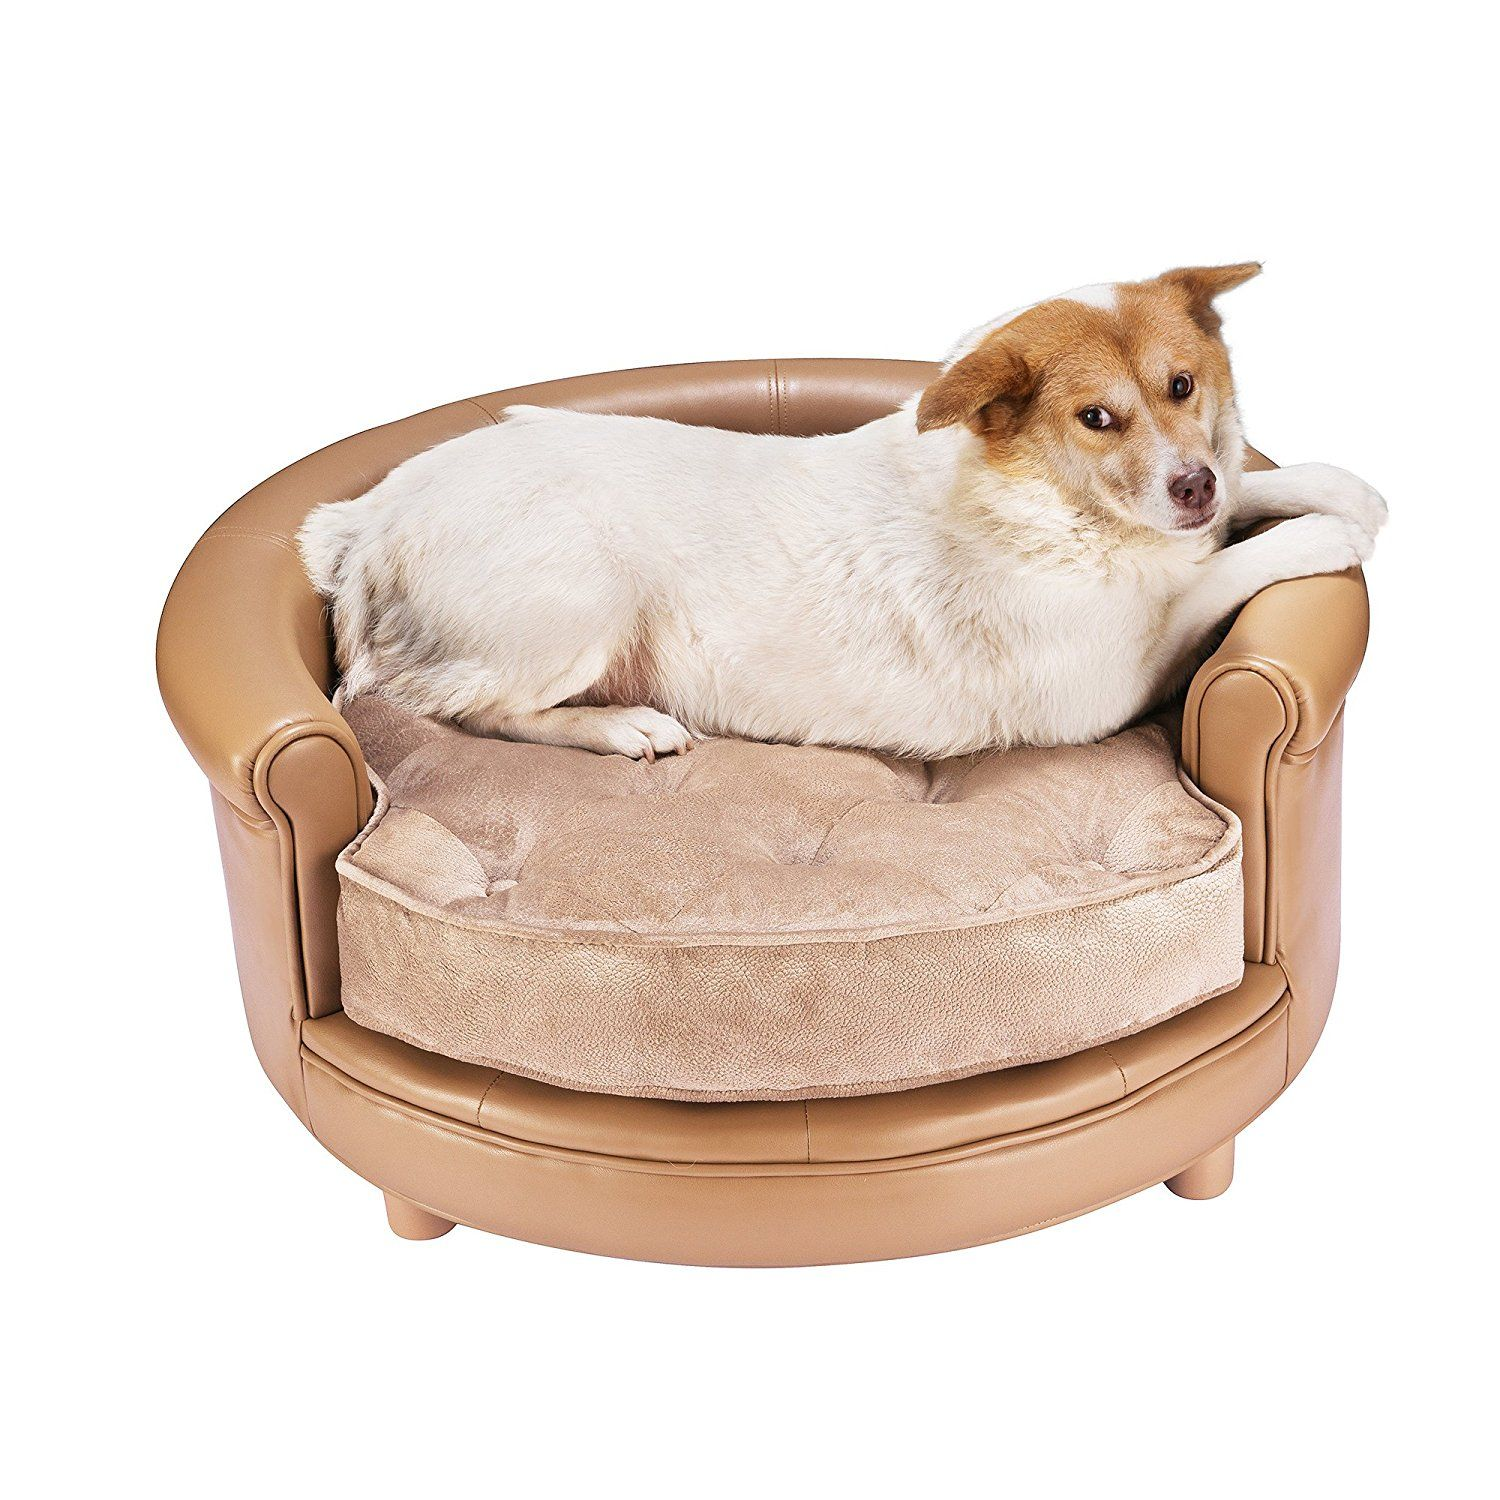 Stylish Birch Dog Bed With Pillow Topper Canada Pooch Stylish Dog Beds Dog Bed Cozy Dog Bed